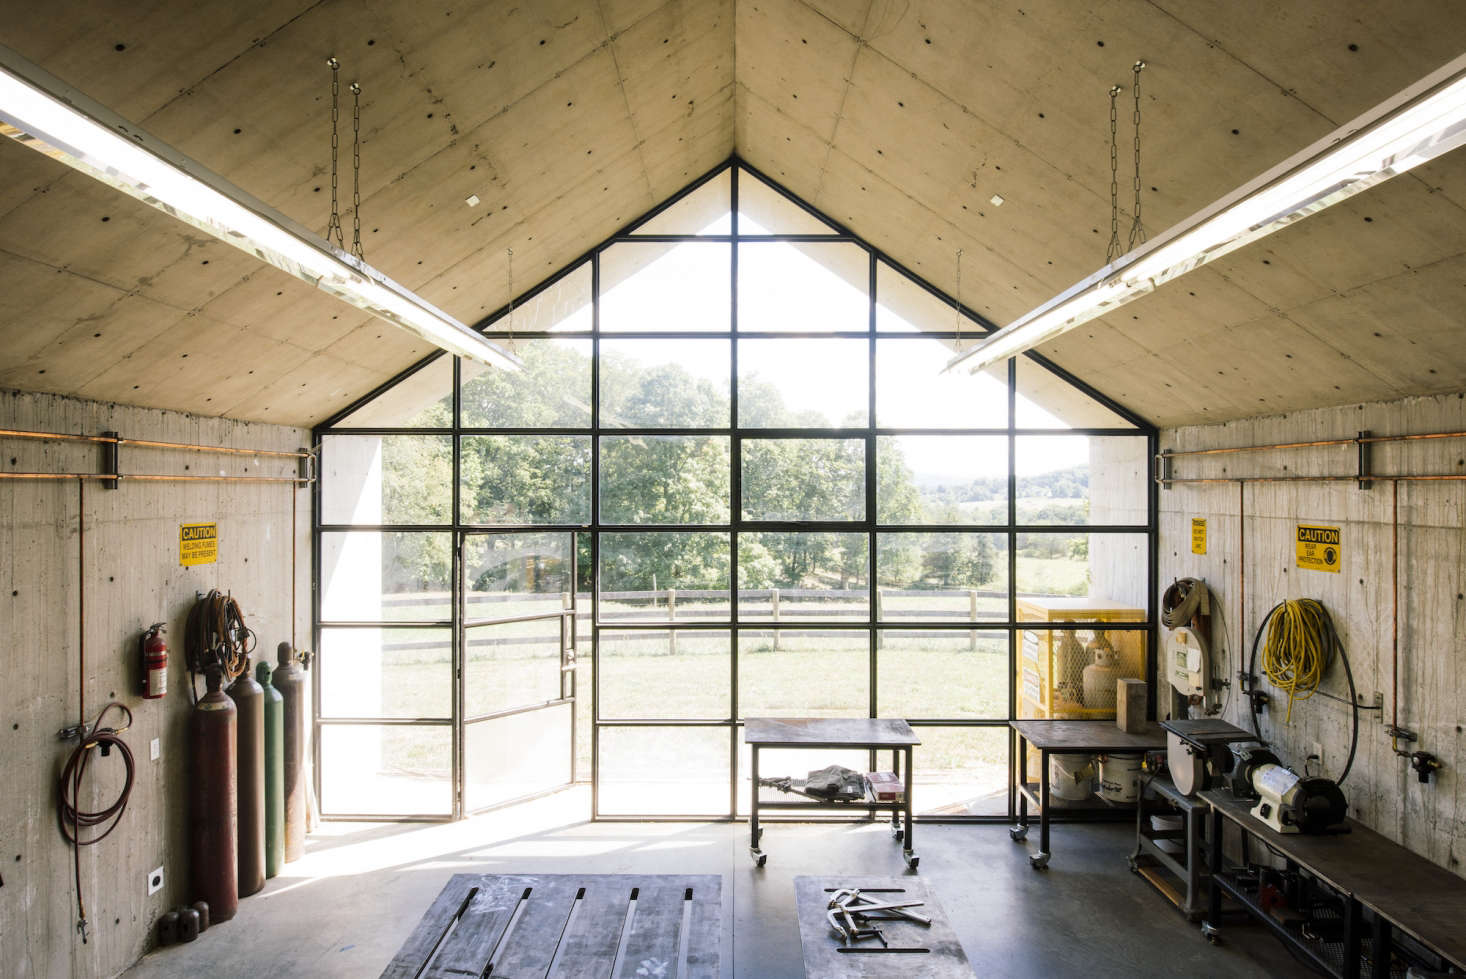 At one end of the studio is a gabled wall of gridded steel windows with embedded lights and an operable door. The studio is lighted by two long rows of off-the-shelf fluorescent hanging lights.